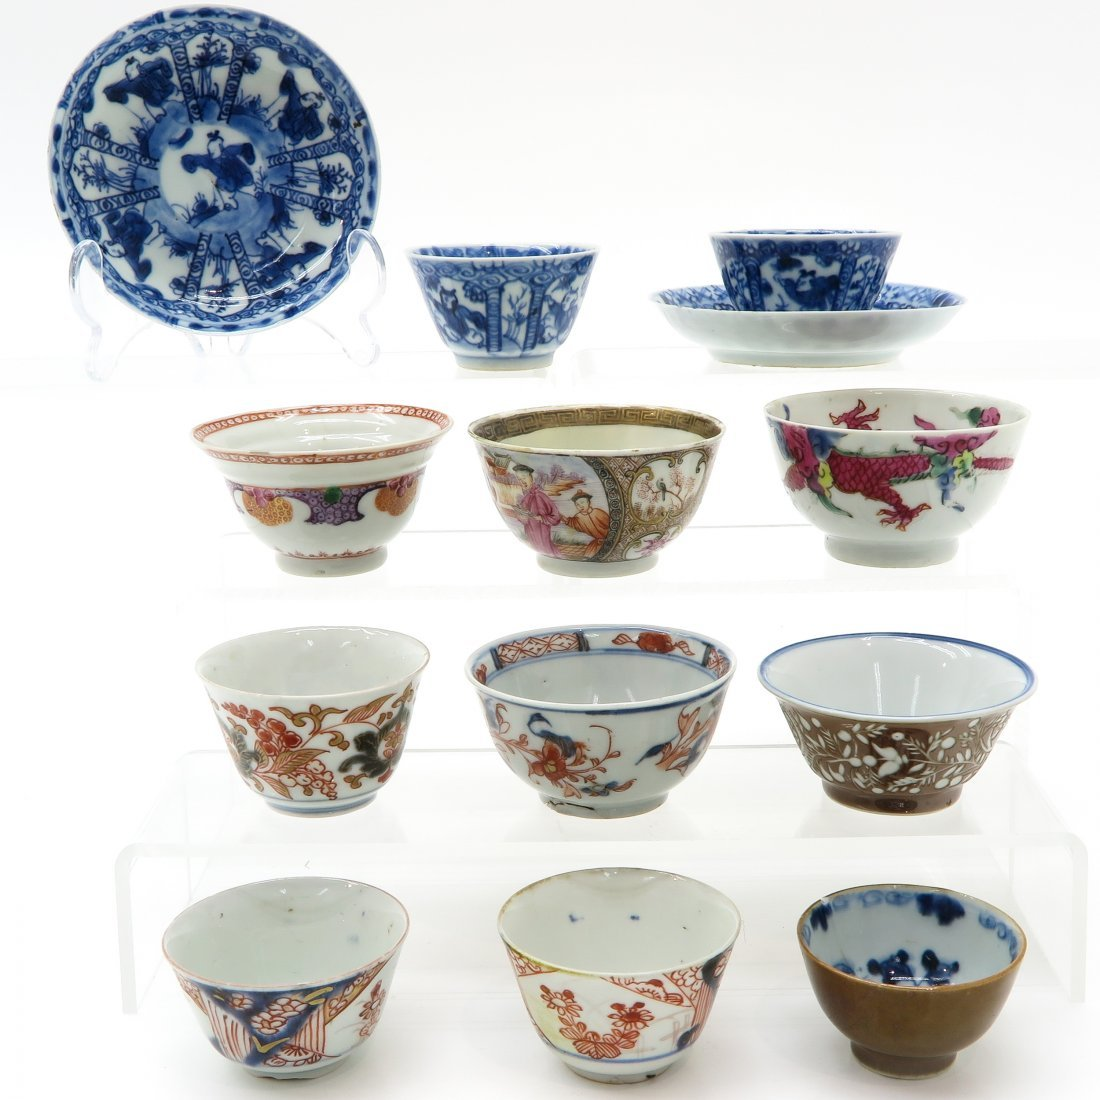 Diverse Lot of 18th Century China Porcelain